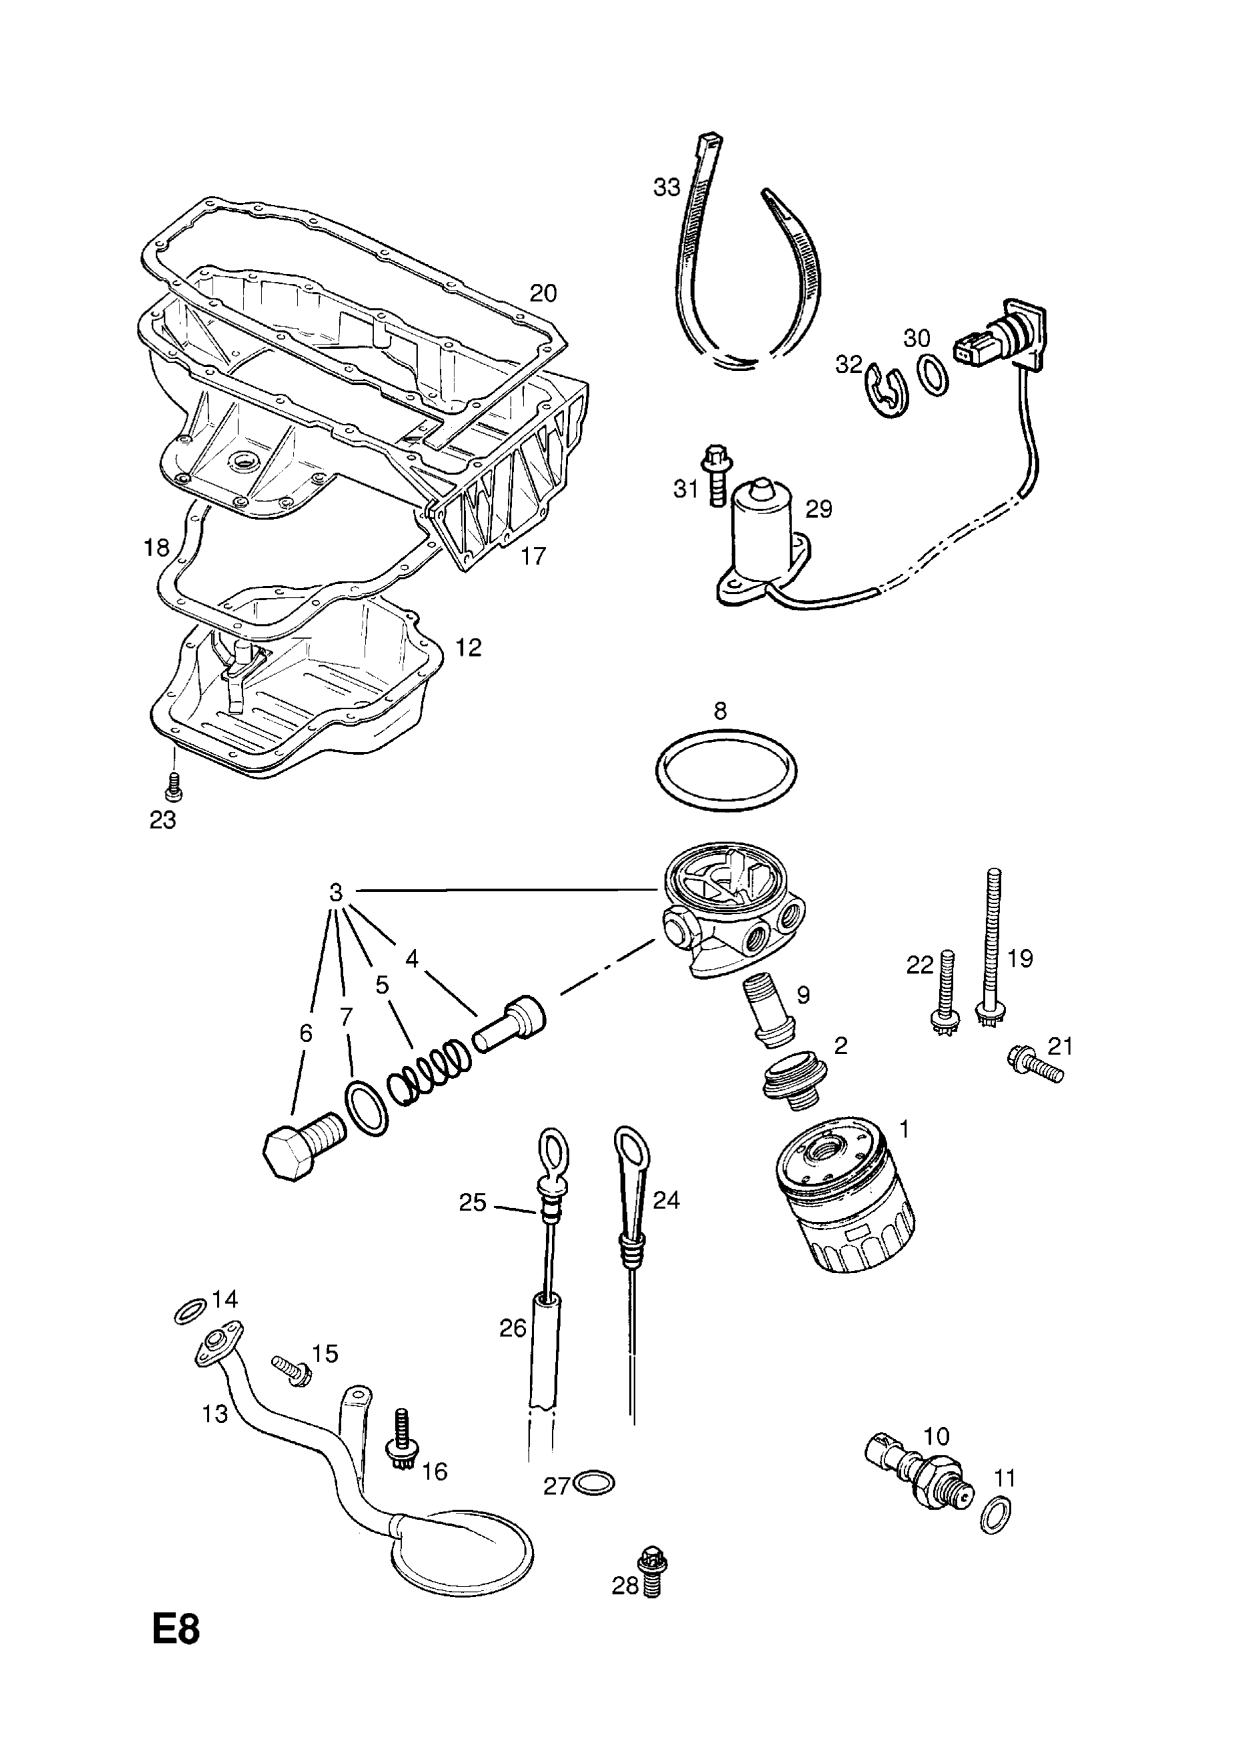 Group E Engine And Clutch Subsection 1 Z20let Petrol Engine